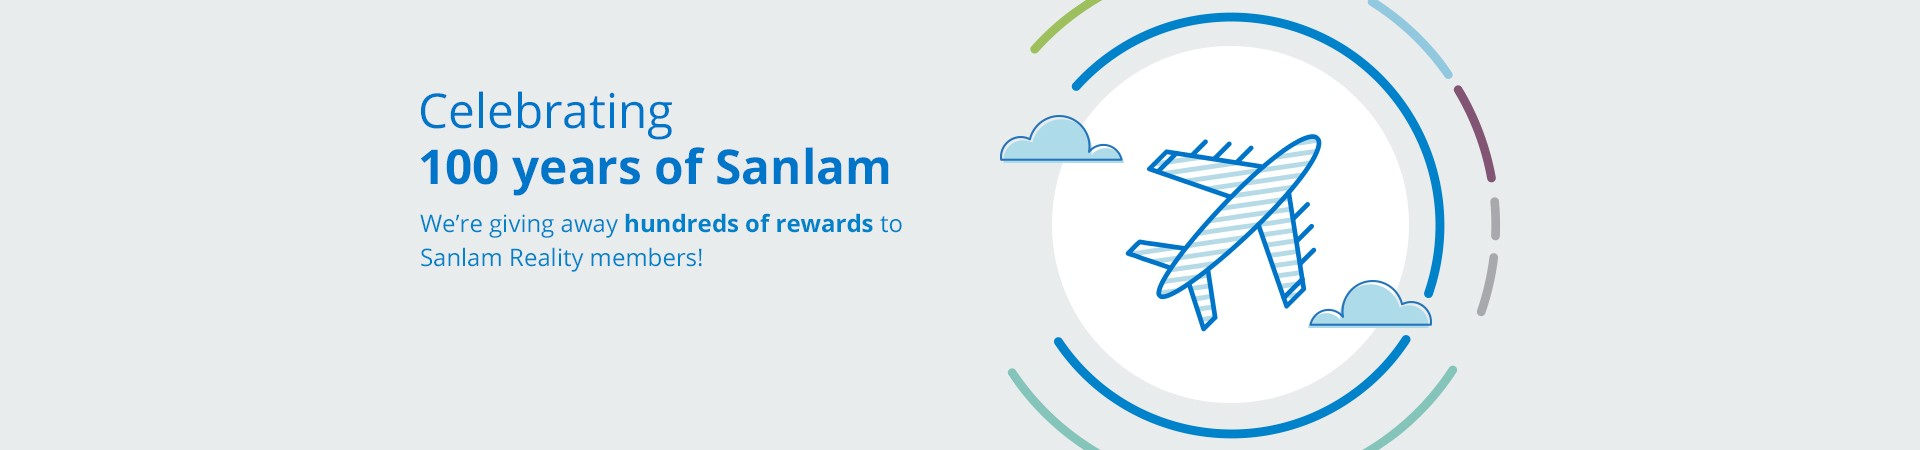 Sanlam Reality 100 Year Competition Header Image-3